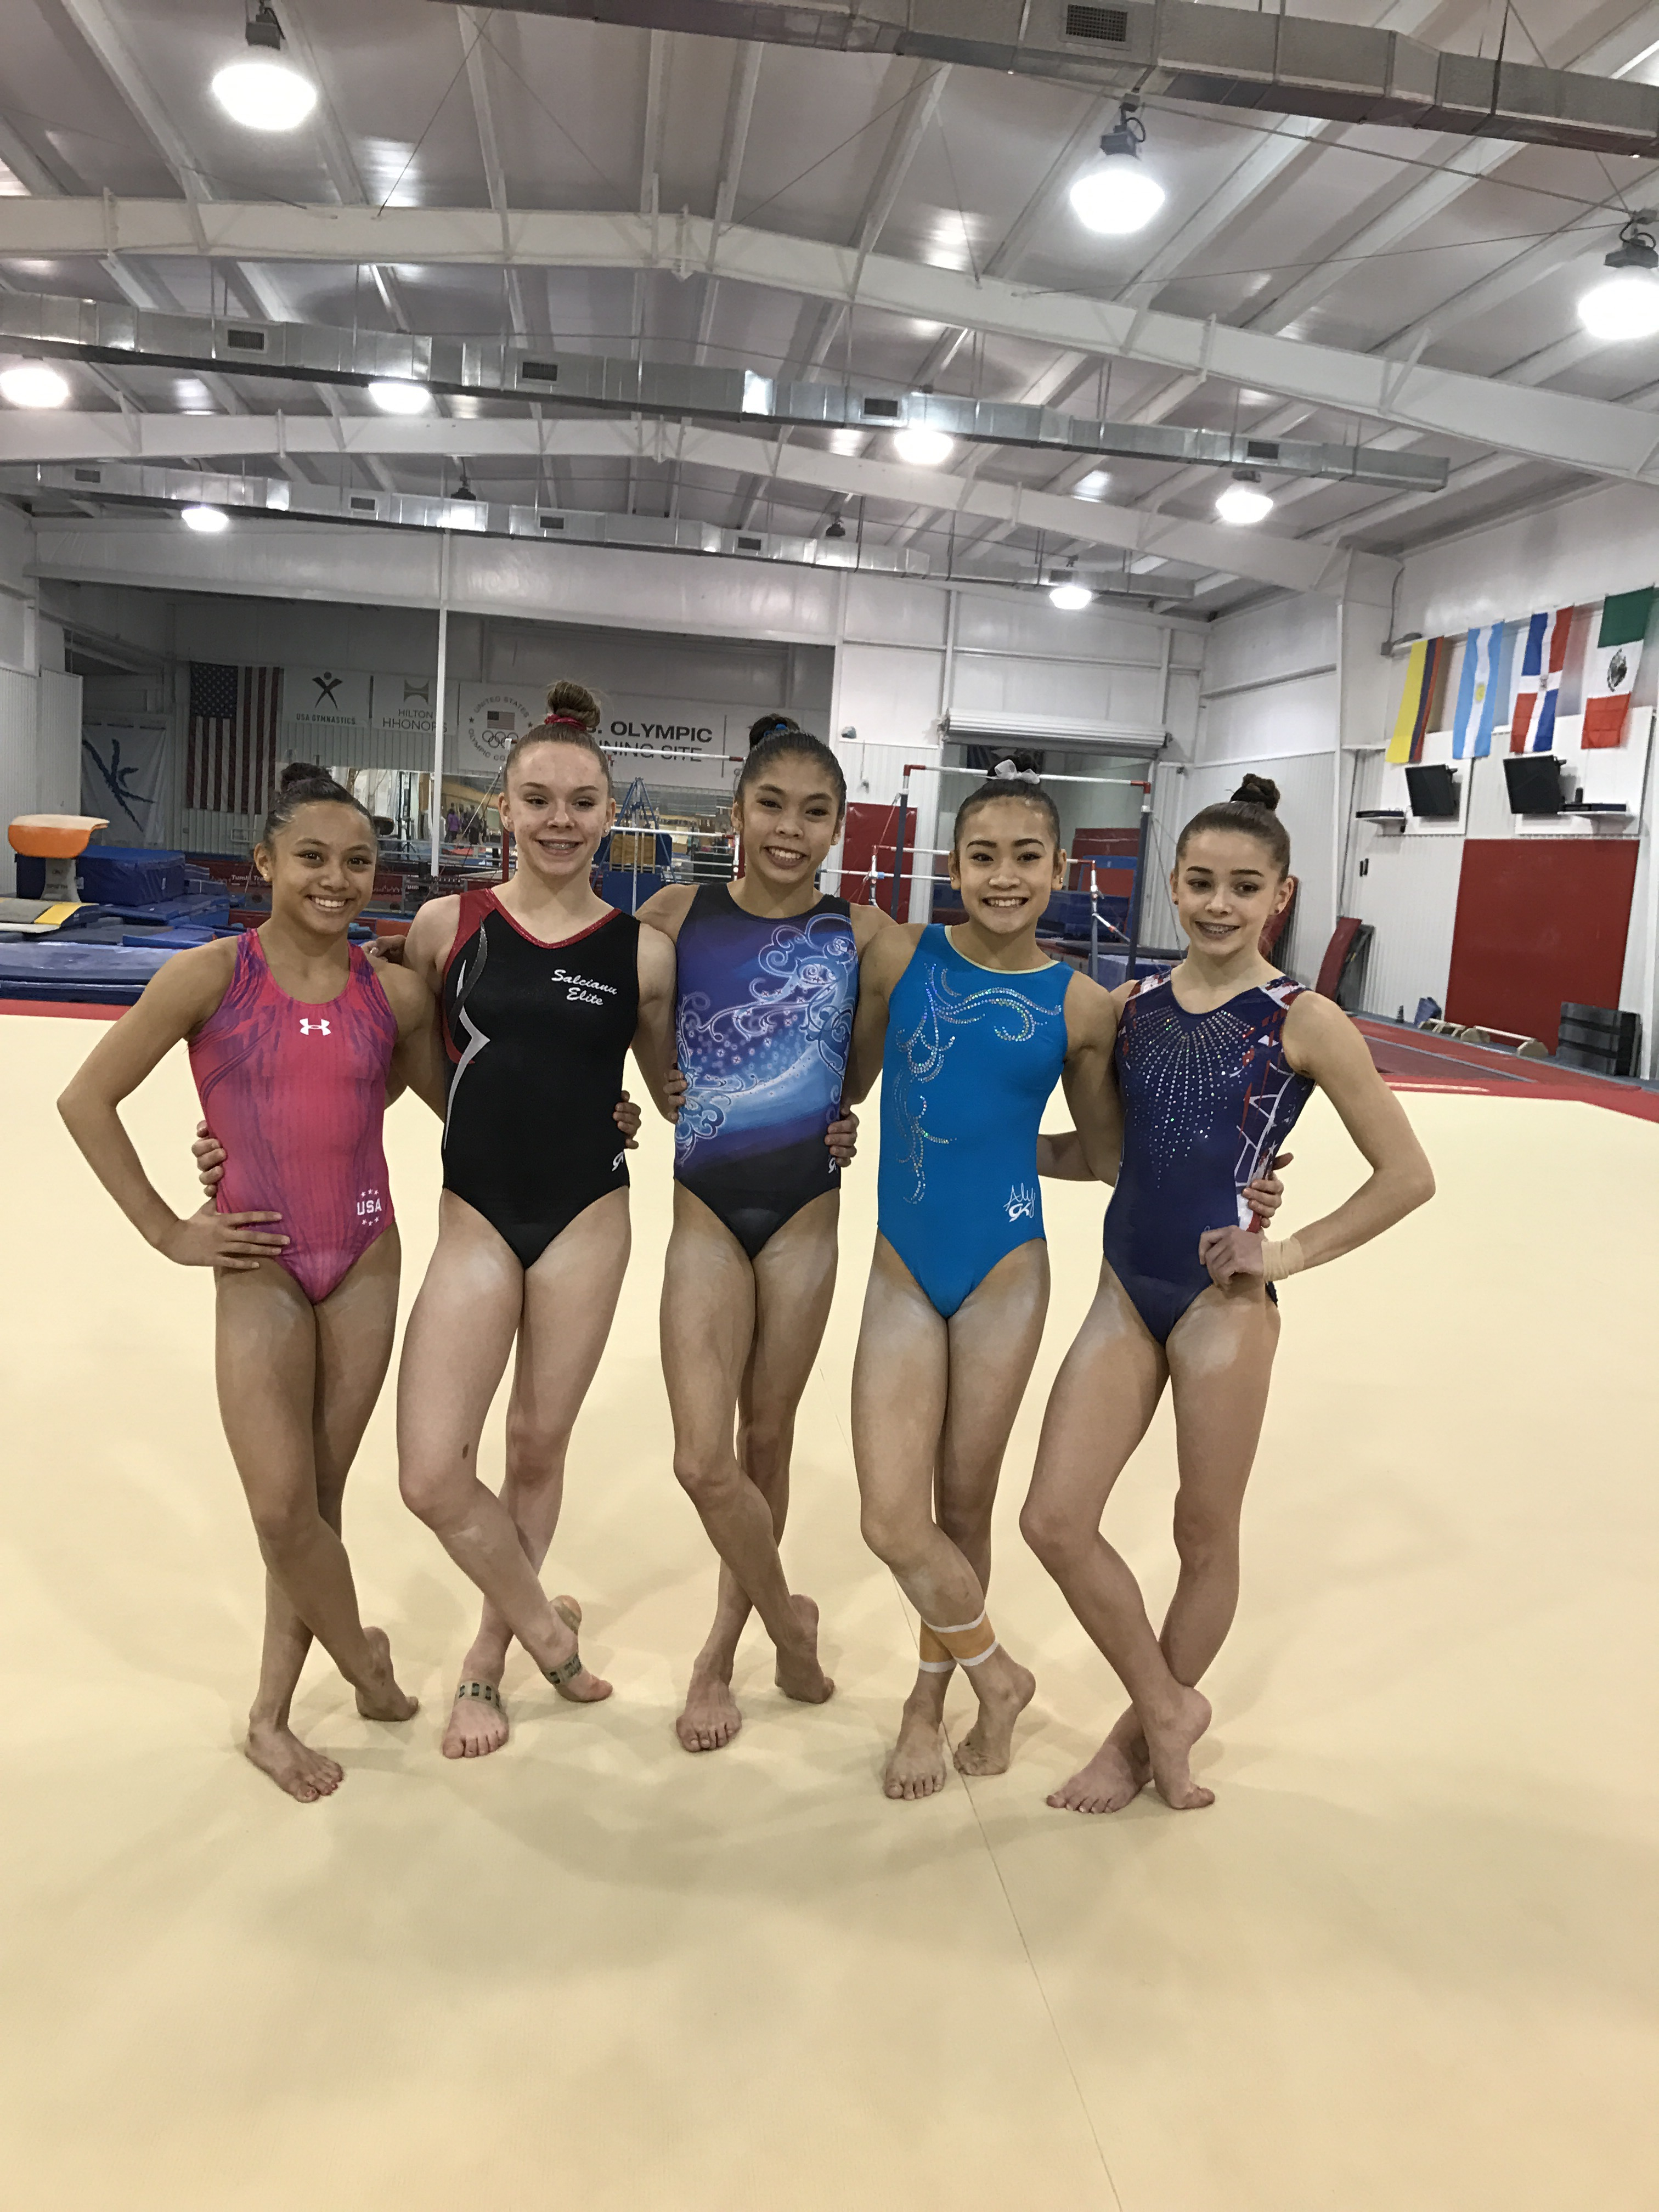 gymnastic junior USA Gymnastics named the 12-gymnast squad that will compete at the City of  Jesolo (Italy) Trophy, April 1-2. The complete team for Jesolo is as  follows.